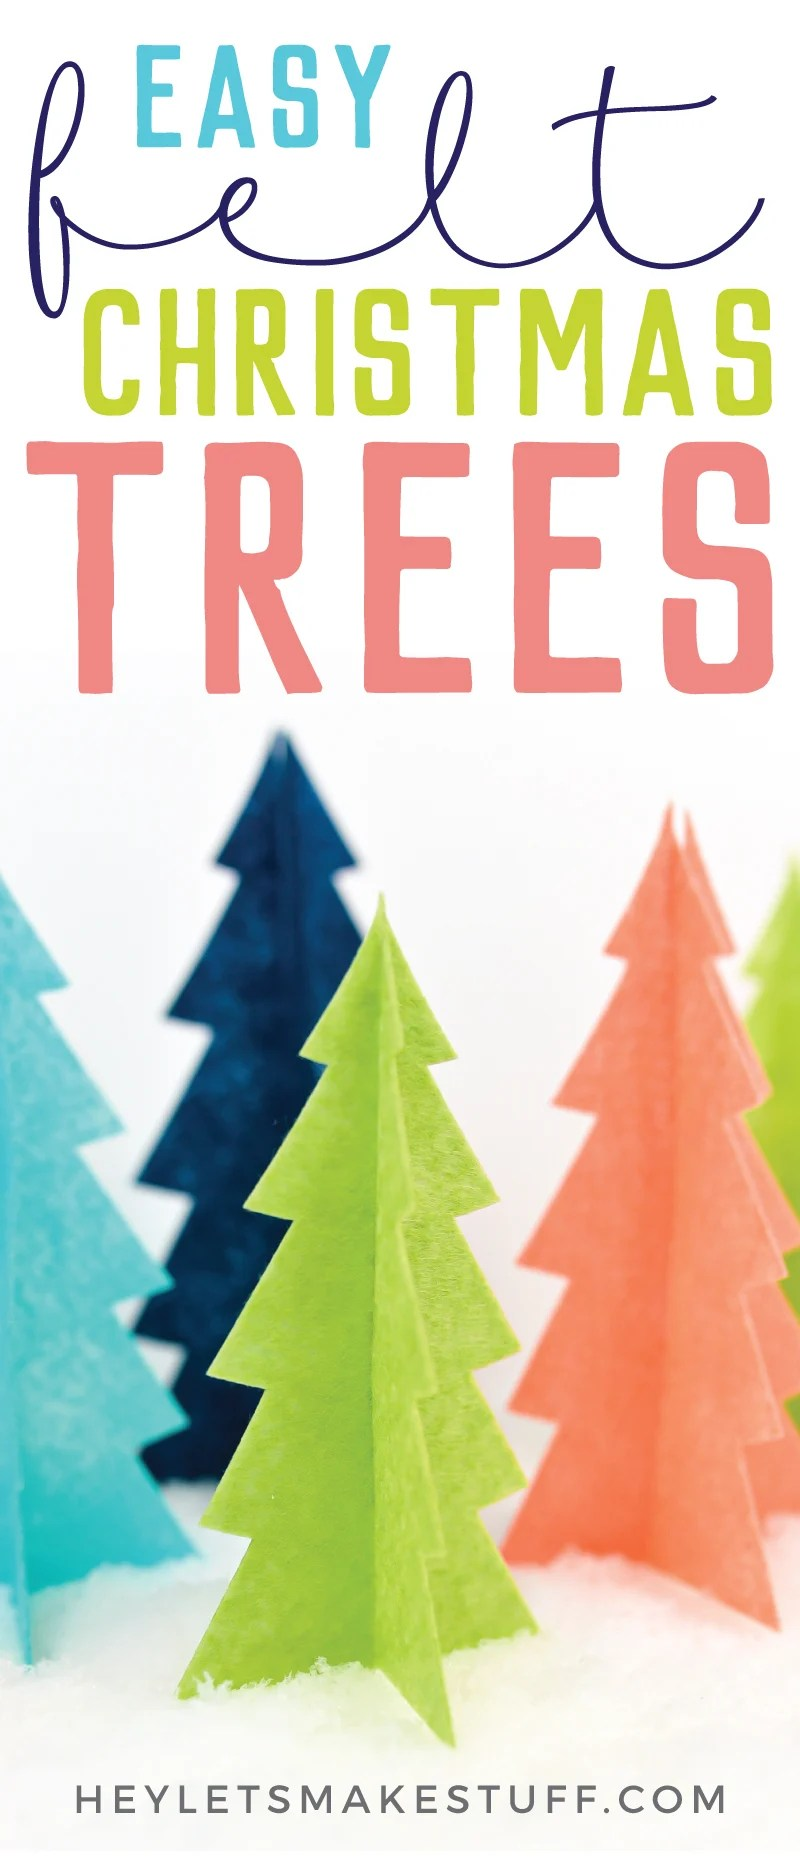 Looking for easy Christmas decor? These felt Christmas trees are so easy to make using your Cricut! Just cut, assemble, and display! via @heyletsmakestuf